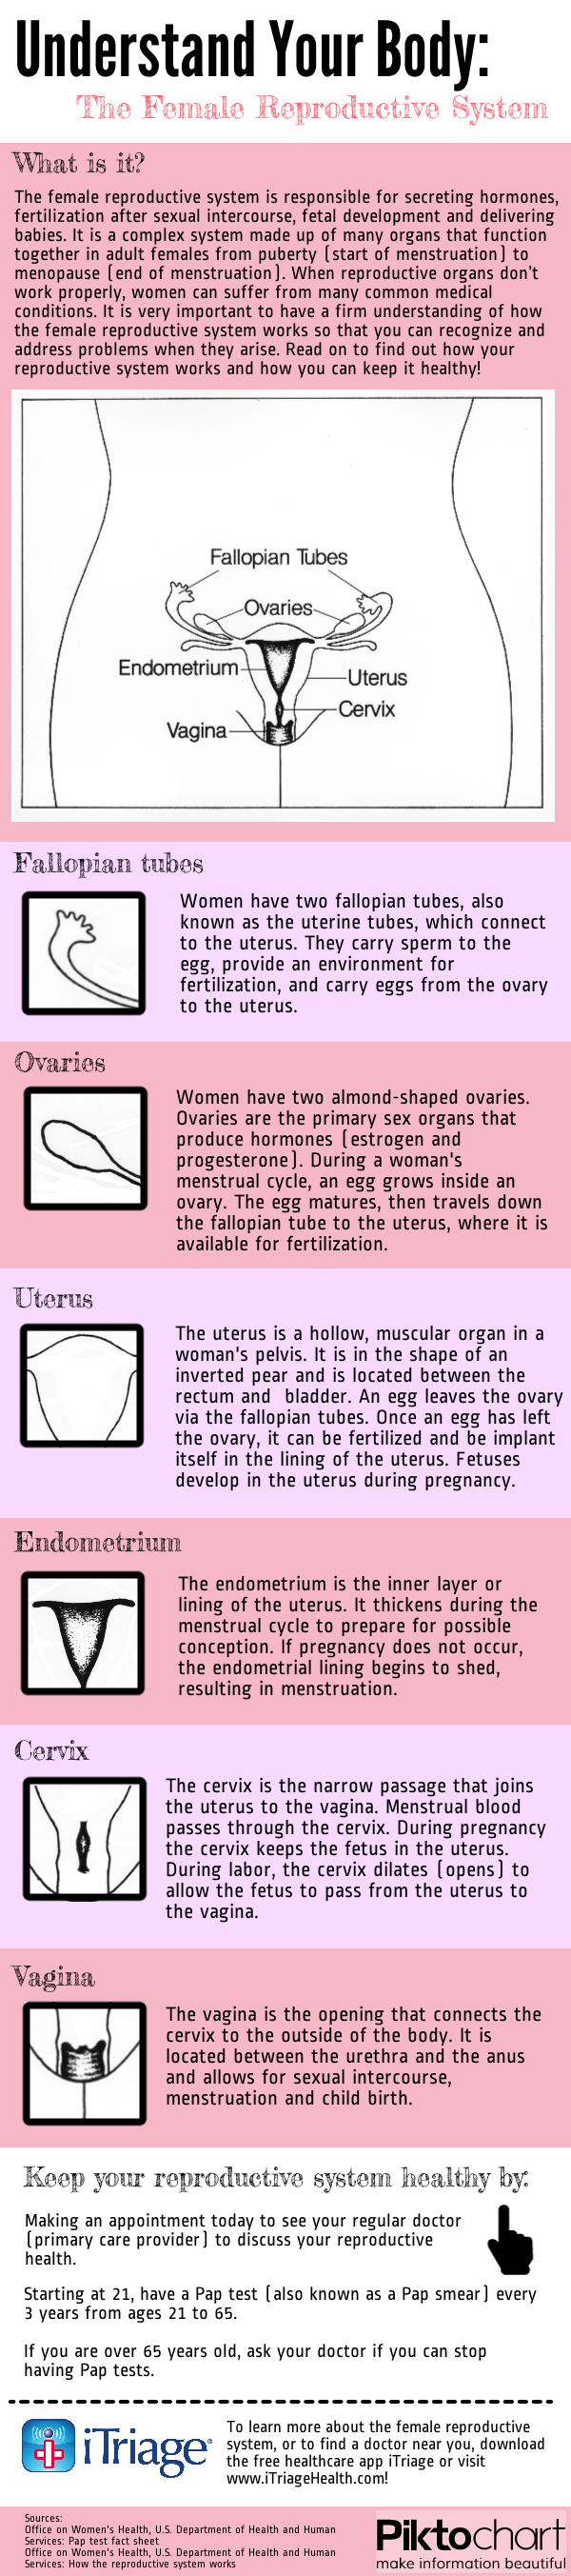 Understand Your Body Female Reproductive System Nursing